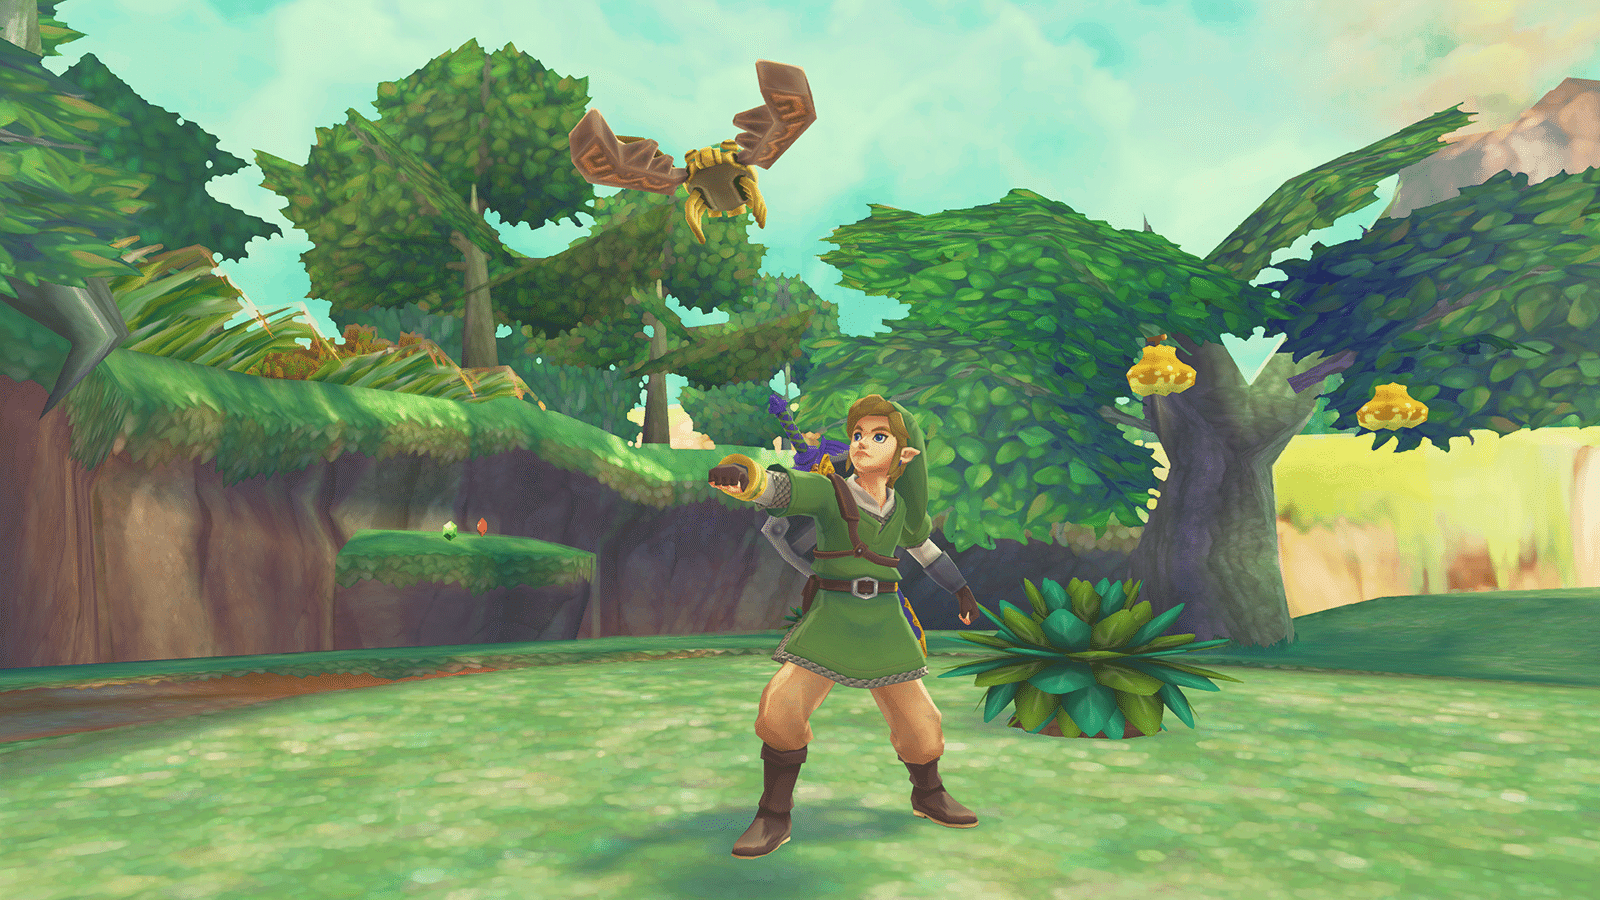 (LEGEND OF ZELDA: SKYWARD SWORD - NINTENDO)